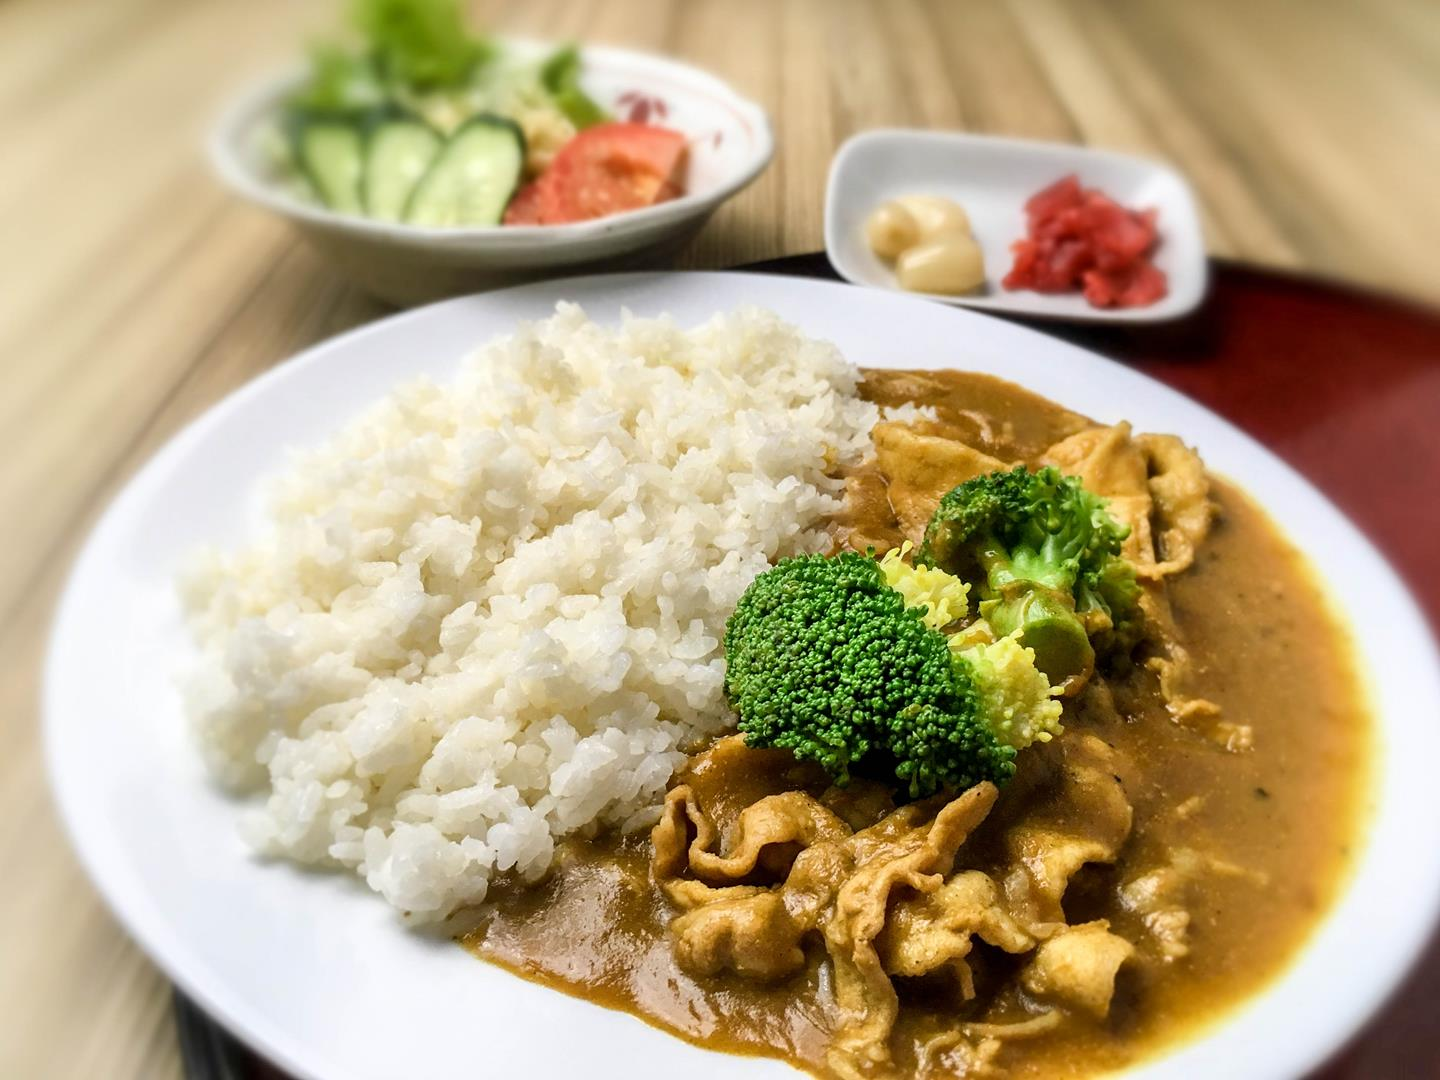 Meat lovers will be fully satiated with Kitsho's concoction of Pork Curry on rice.